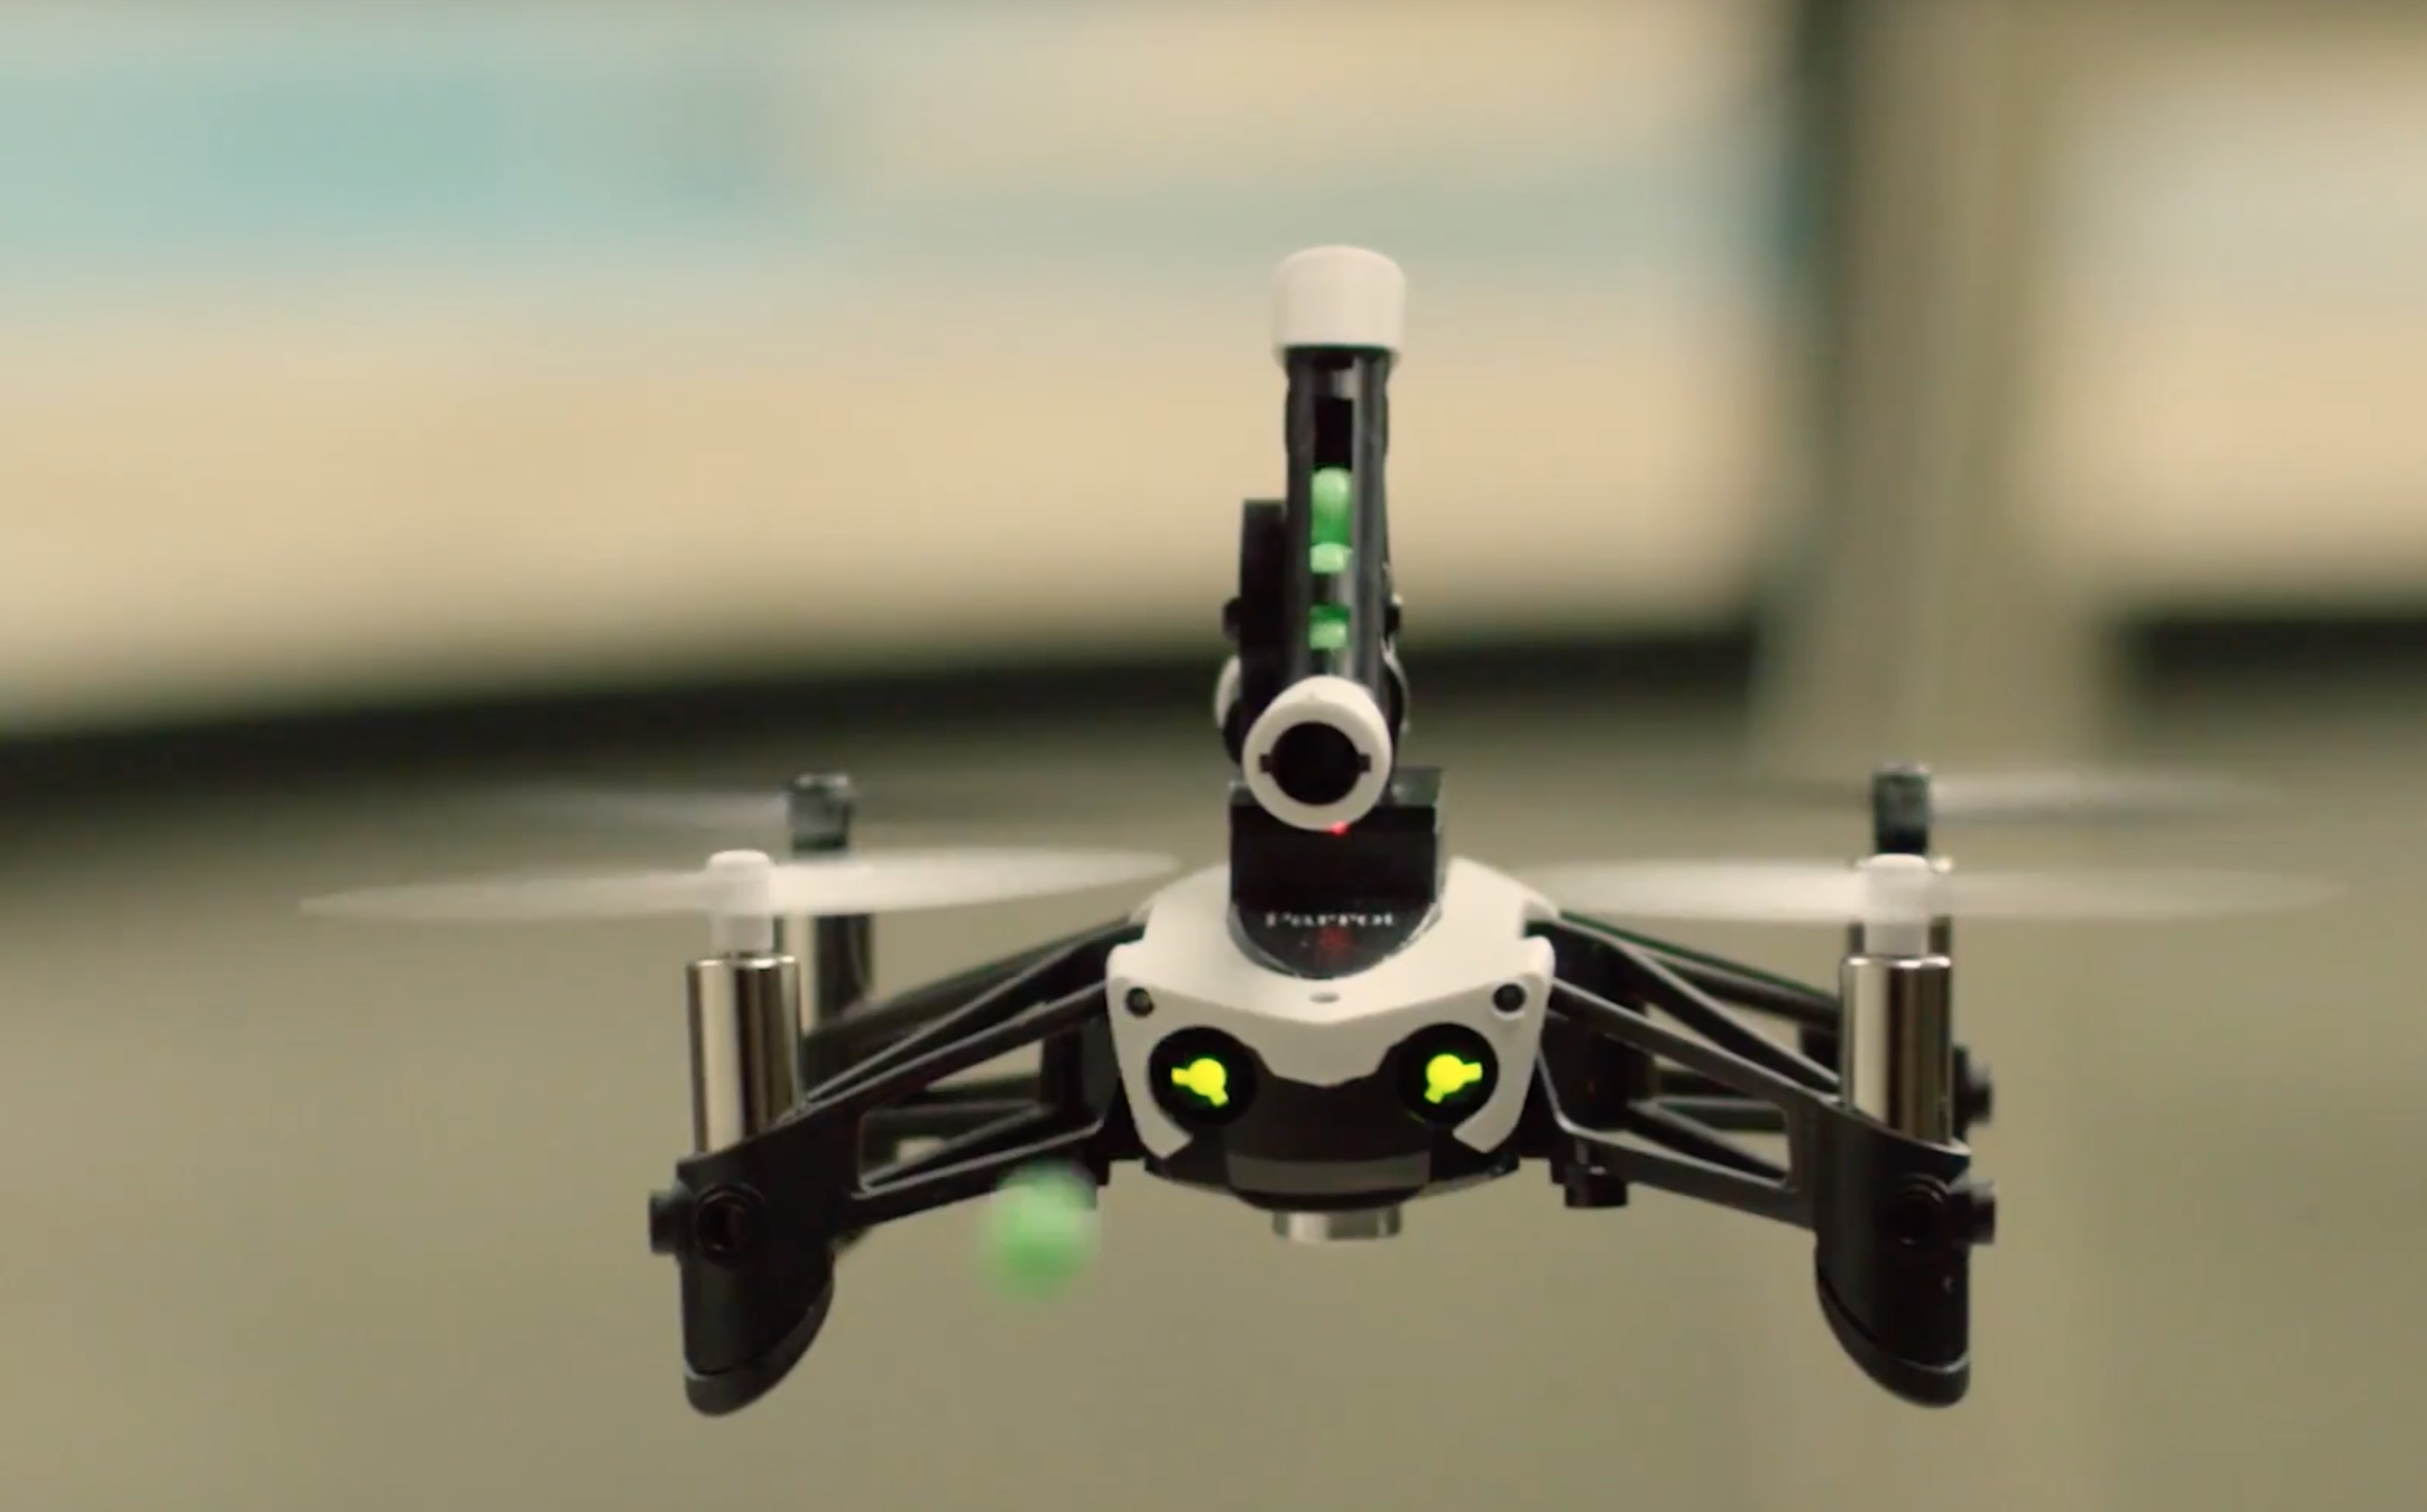 parrot mini drone jumping sumo with Parrot Mambo Herstellervideo on Parrot Mambo Herstellervideo moreover Parrot Minidrones moreover Los Drones likewise Watch furthermore Cargador Parrot Disco 3520410039539 236.